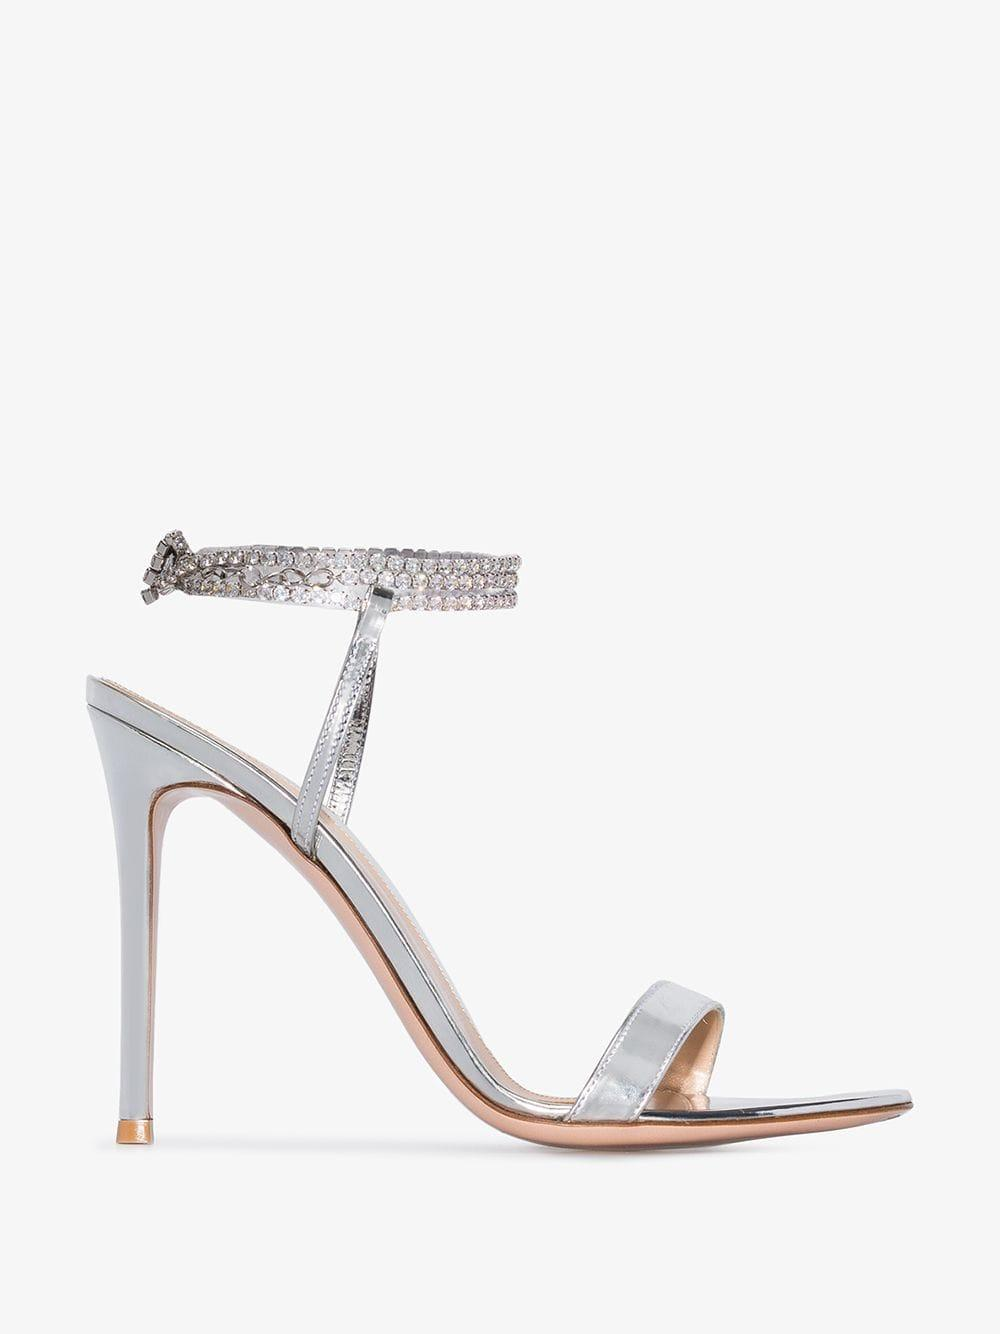 5c26574a3 Lyst - Gianvito Rossi Silver Tennis 105 Crystal Metallic Sandals in ...